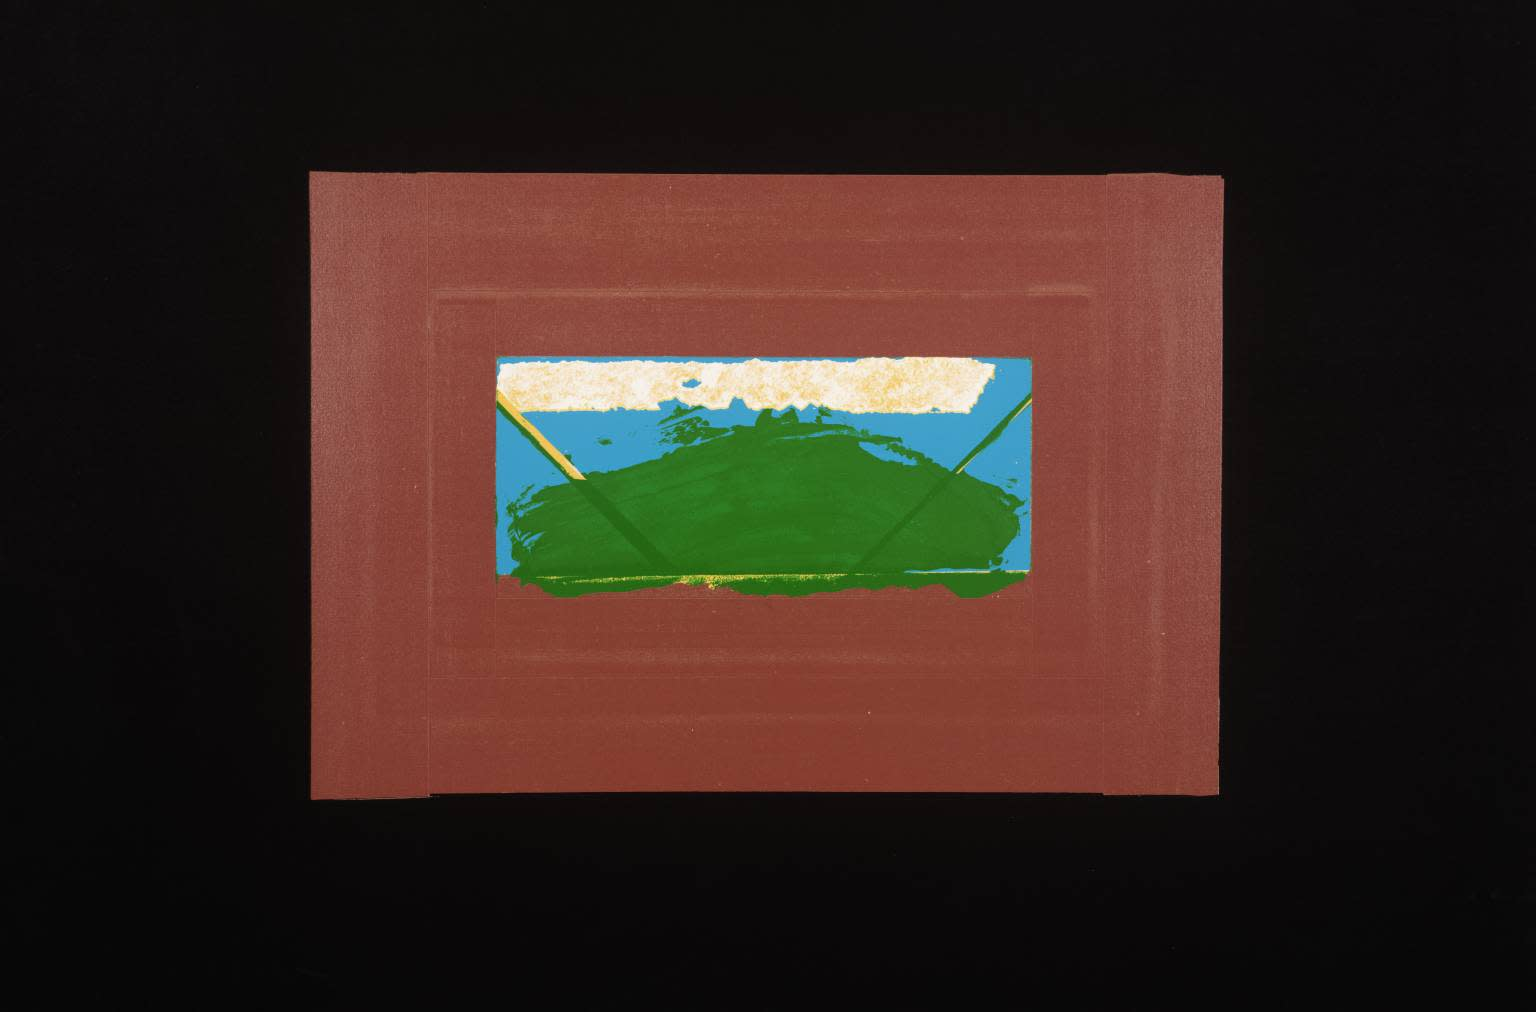 <span class=&#34;link fancybox-details-link&#34;><a href=&#34;/artists/163-sir-howard-hodgkin-ch-cbe/works/4063-sir-howard-hodgkin-ch-cbe-indian-view-g-1971/&#34;>View Detail Page</a></span><div class=&#34;artist&#34;><strong>Sir Howard Hodgkin CH CBE</strong></div> 1932 – 2017 <div class=&#34;title&#34;><em>Indian View G</em>, 1971</div> <div class=&#34;signed_and_dated&#34;>signed and dated in pencil</div> <div class=&#34;medium&#34;>silkscreen print</div> <div class=&#34;dimensions&#34;>57 x 77 cm<br /> 22 1/2 x 30 1/4 in</div> <div class=&#34;edition_details&#34;>Edition 5 of 75</div><div class=&#34;copyright_line&#34;>@ The Estate of Howard Hodgkin</div>